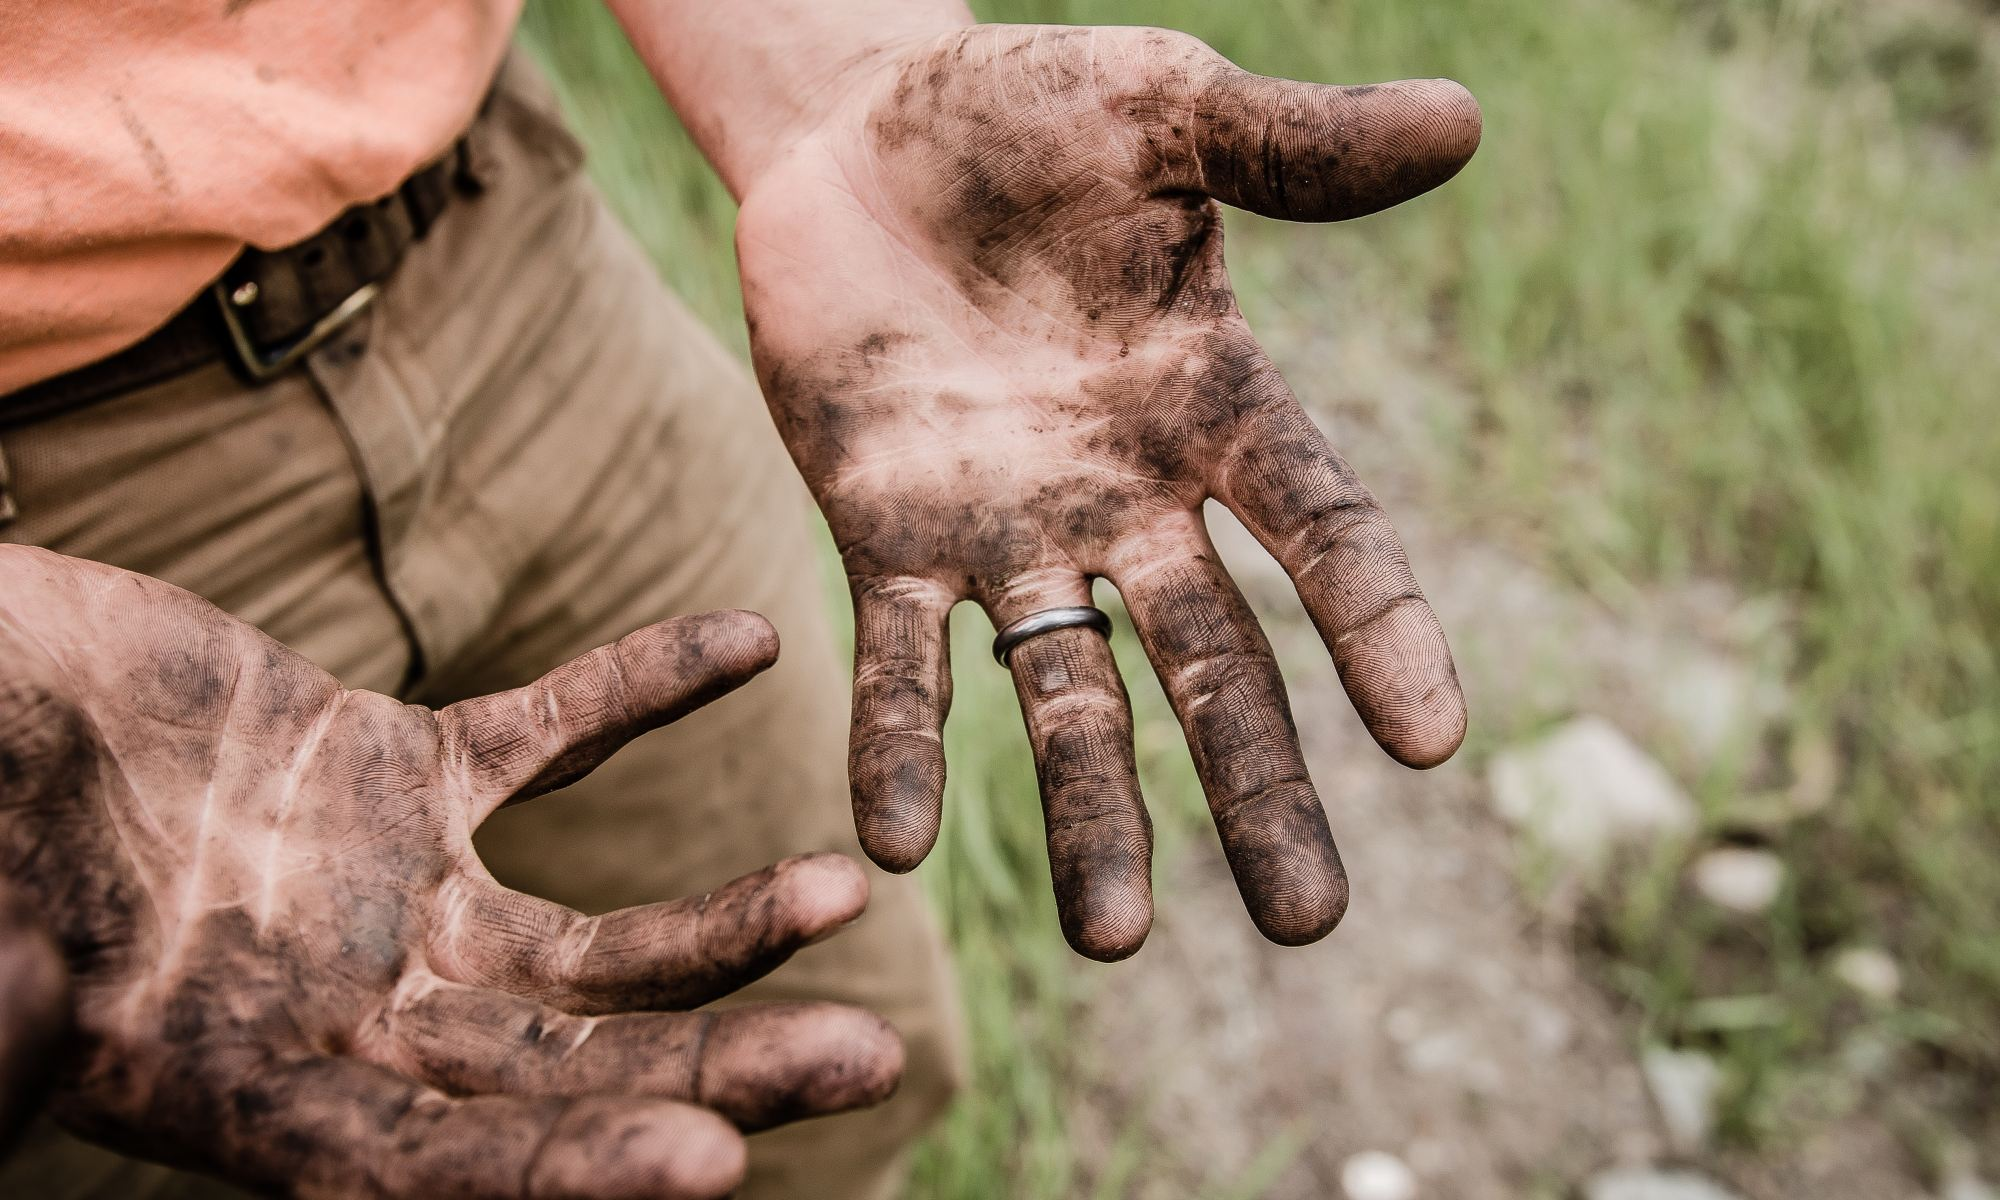 Hard working man with his hands covered in mud